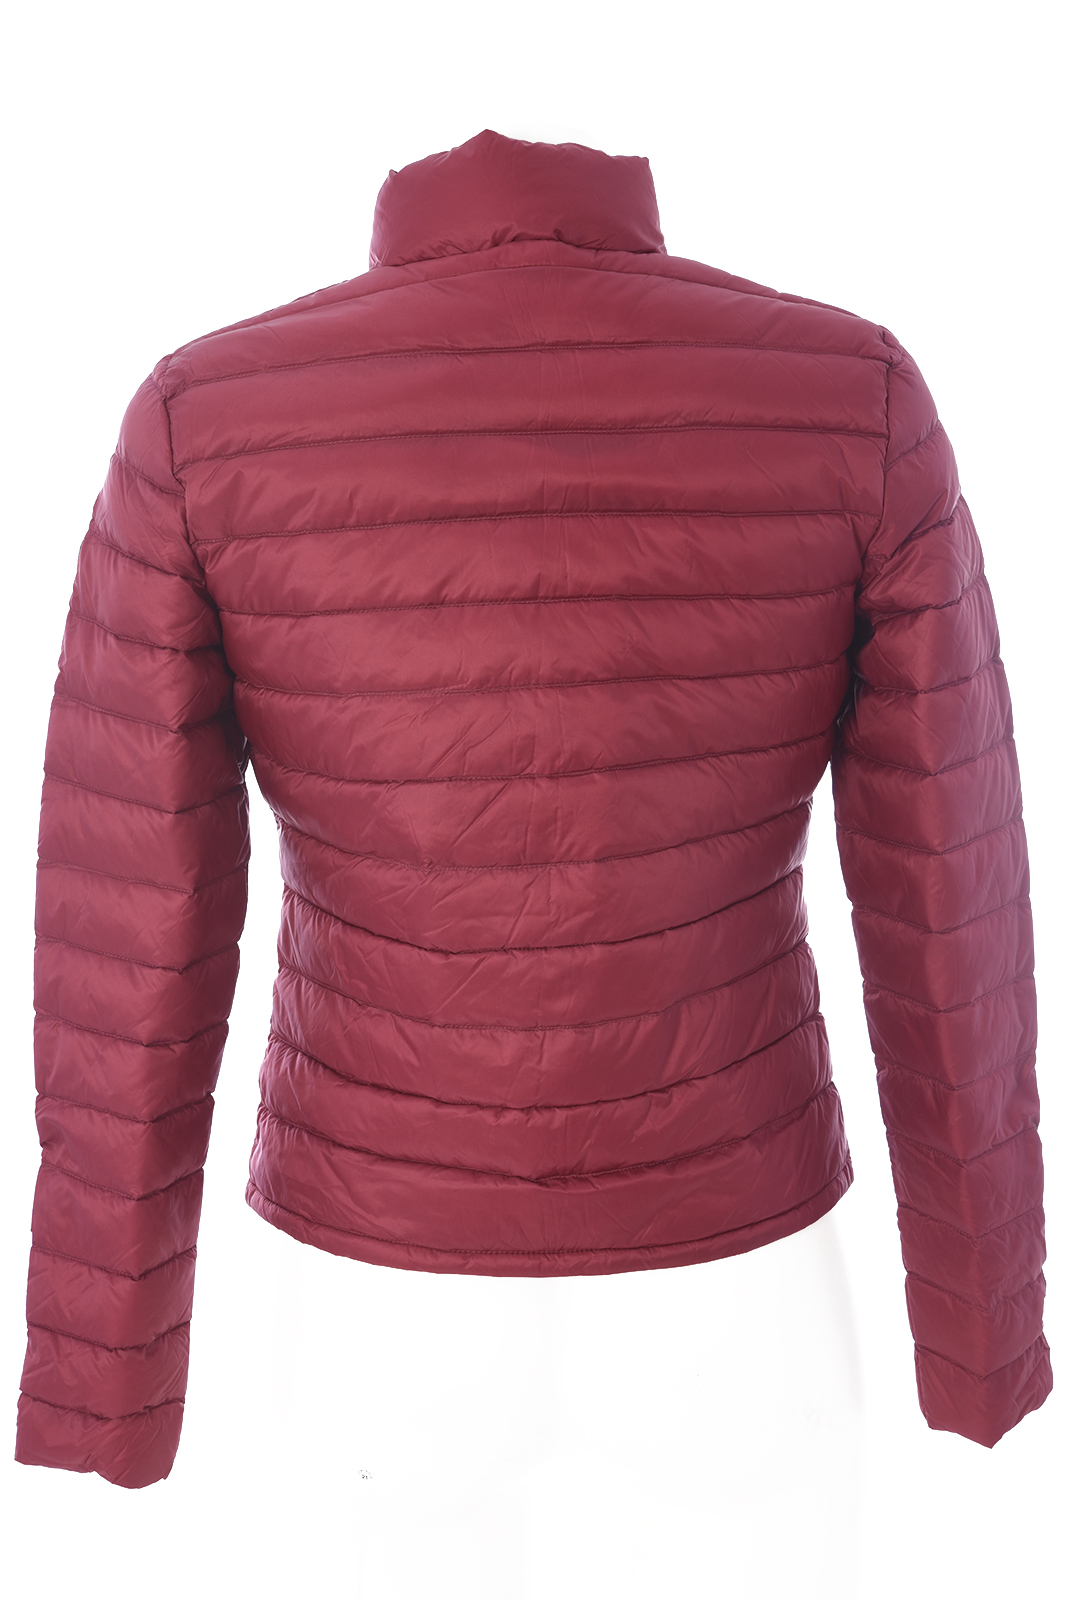 Blouson  Just over the top SONIA 418  FRAMBOISE